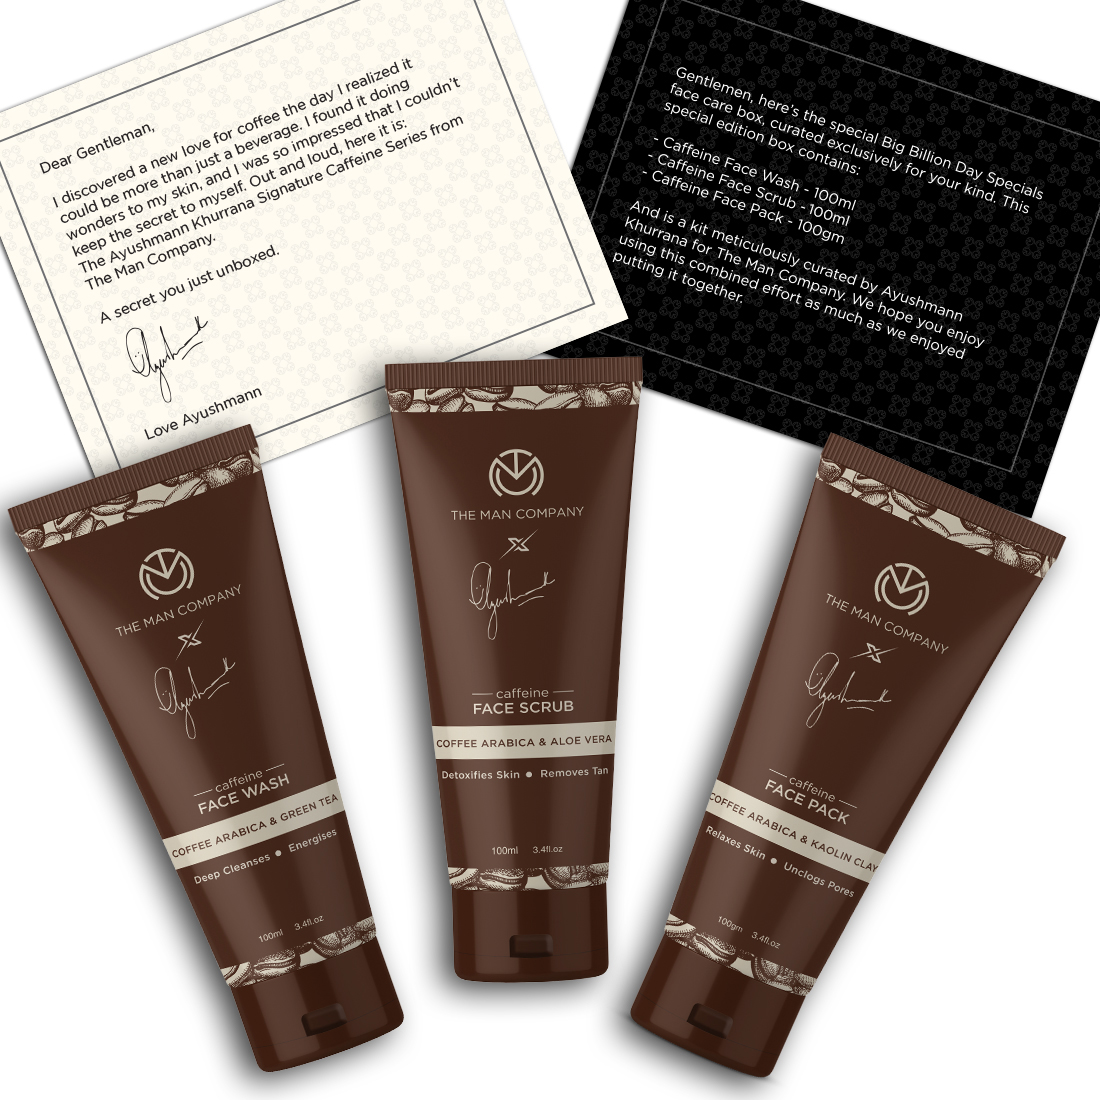 The Man Company Face Cleanse Combo (Caffeine Facewash+Caffeine Face Scrub+Caffeine Face Pack)